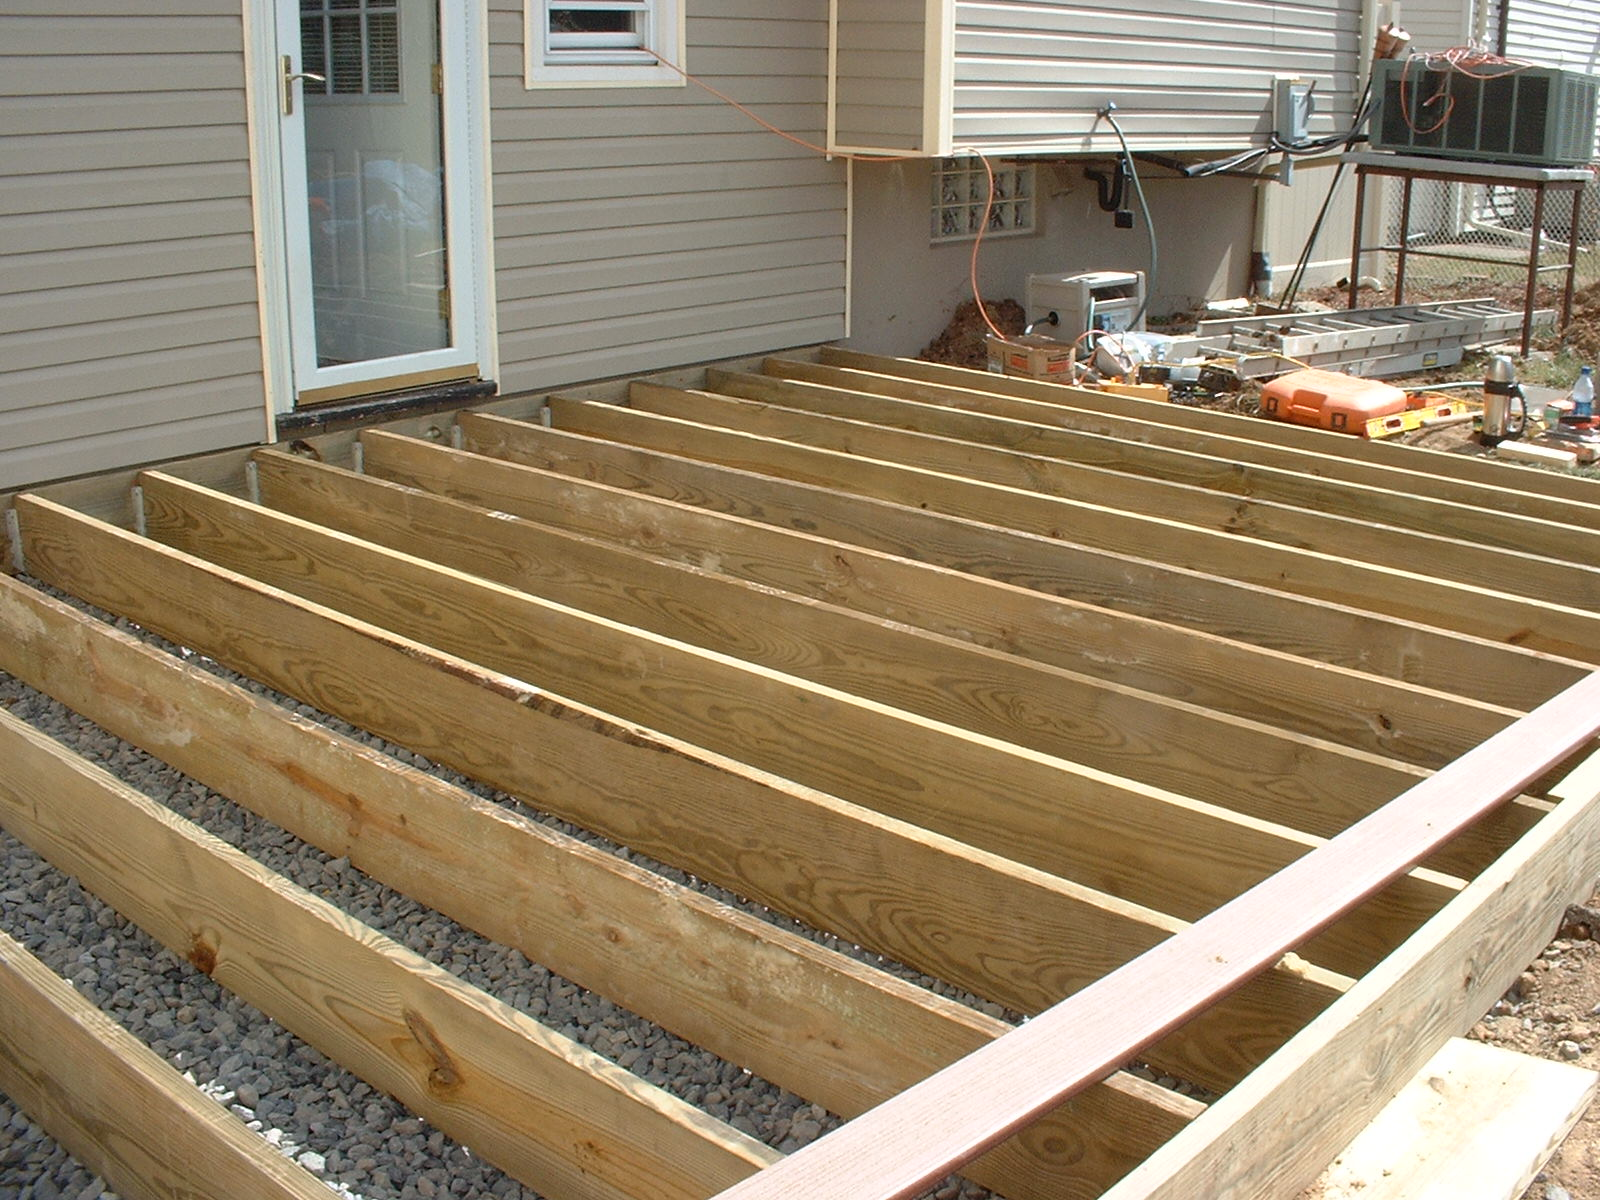 The frame is finished and the decking is started.